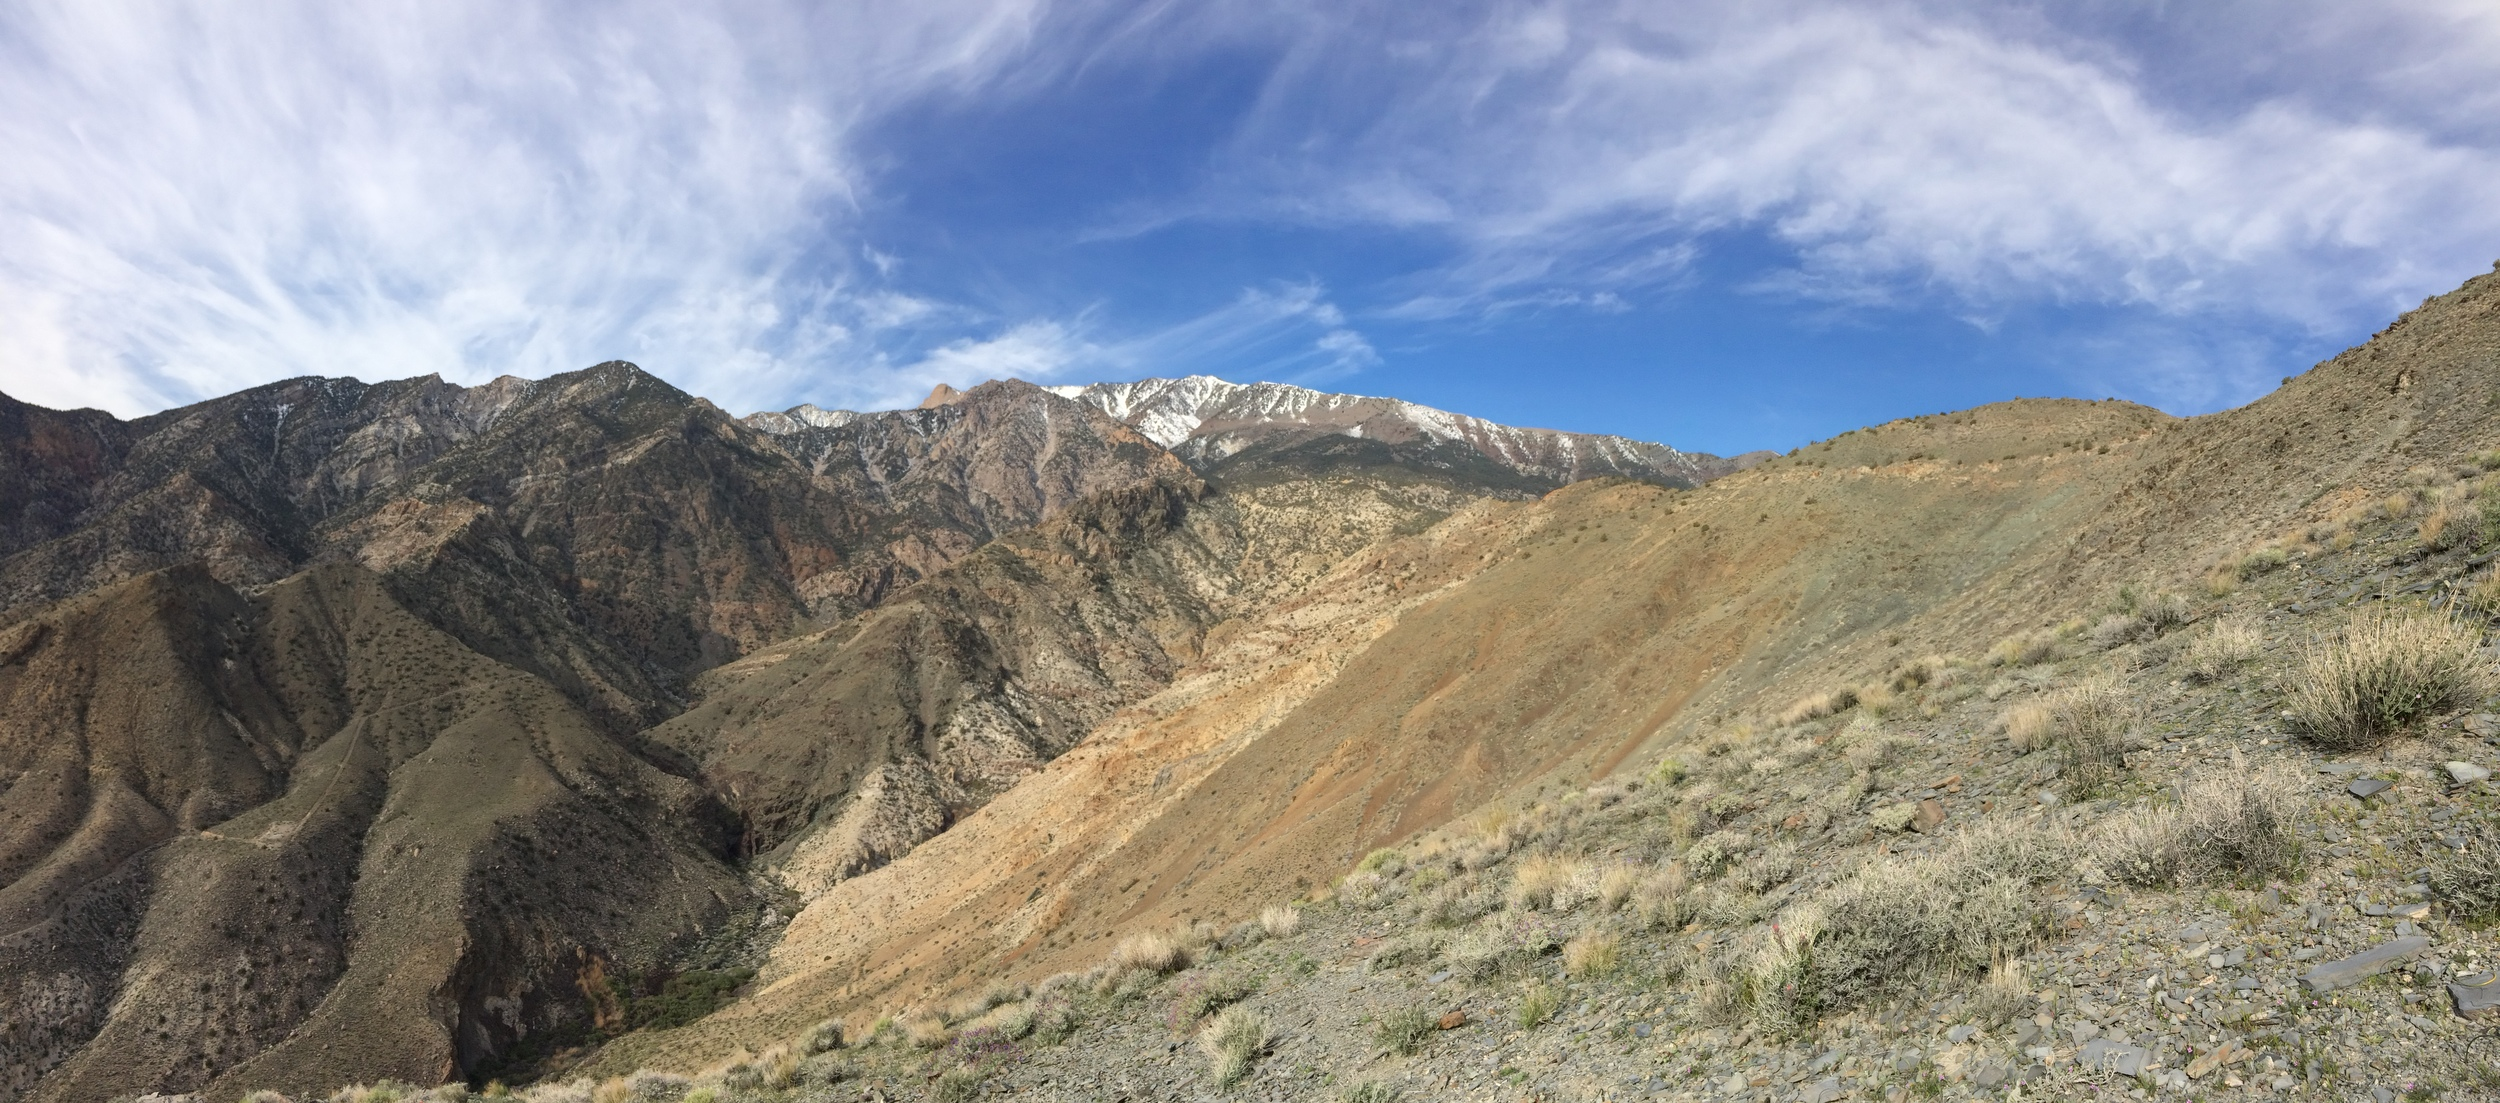 Telescope Peak, March 2015, as seen from the Shorty's Well Route